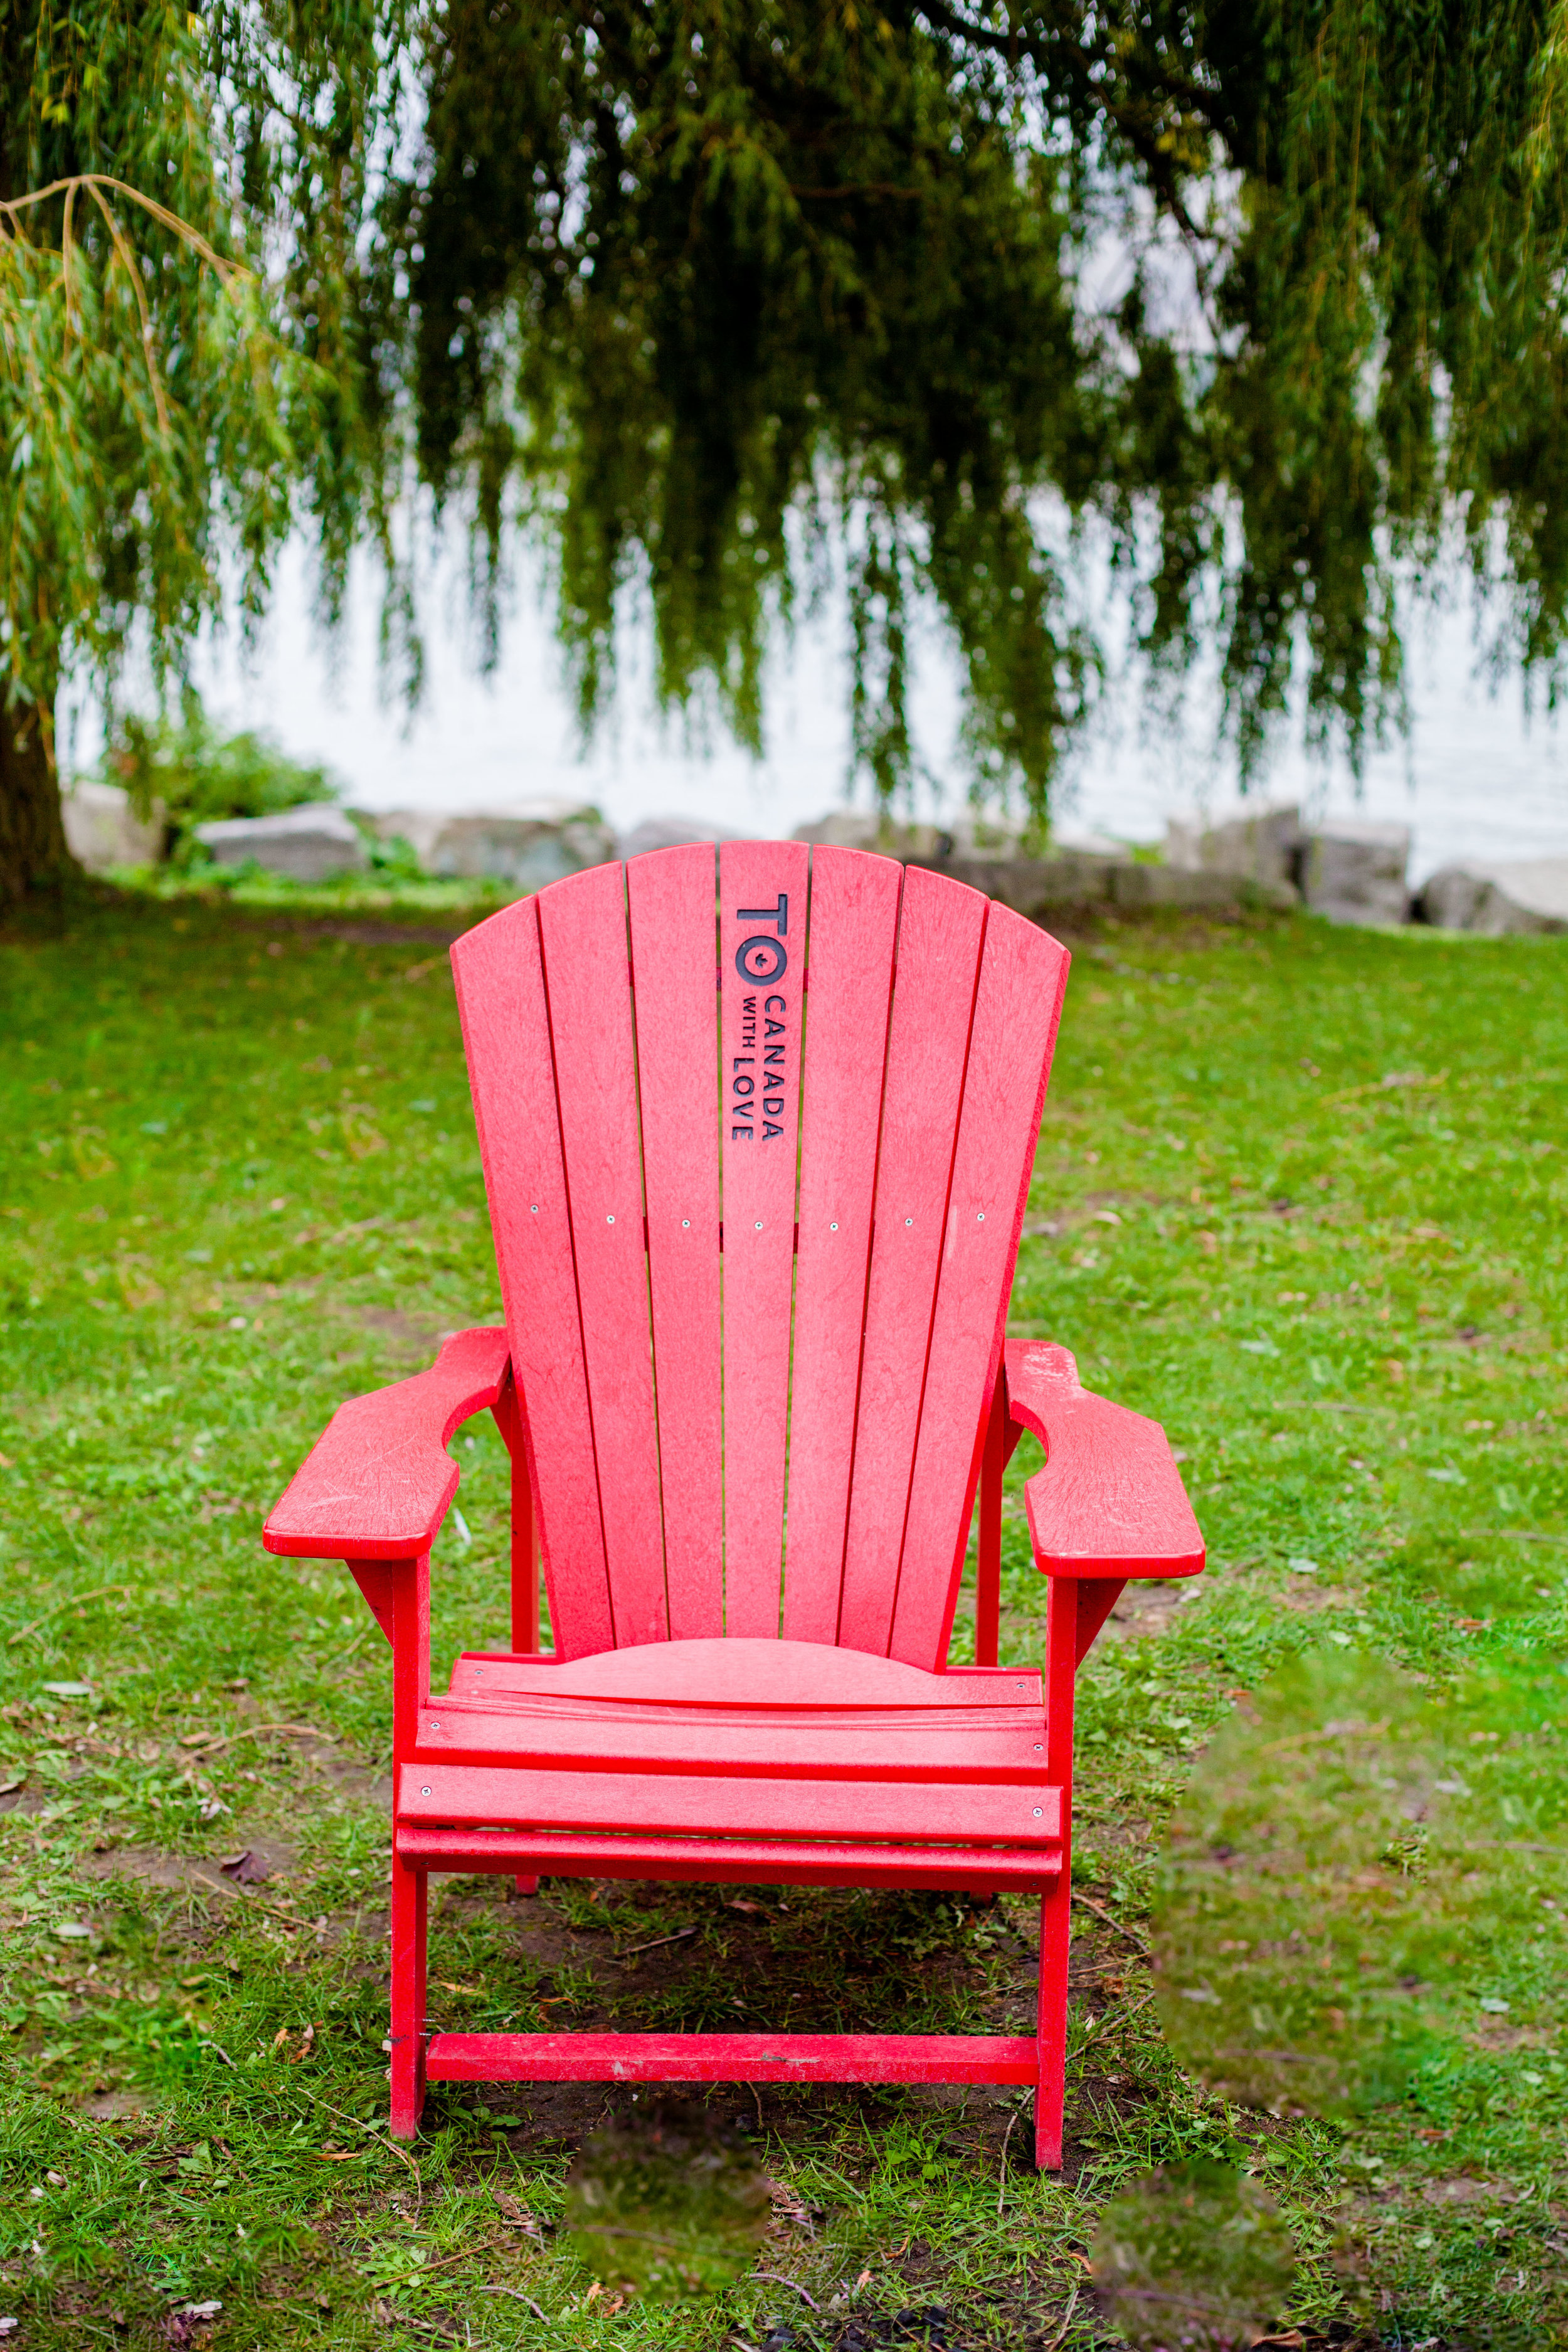 Scarborough Bluffs Toronto Blogger Architecture Ontario Nature Blogs After 50 years old greenery Red Muskoka Chairs